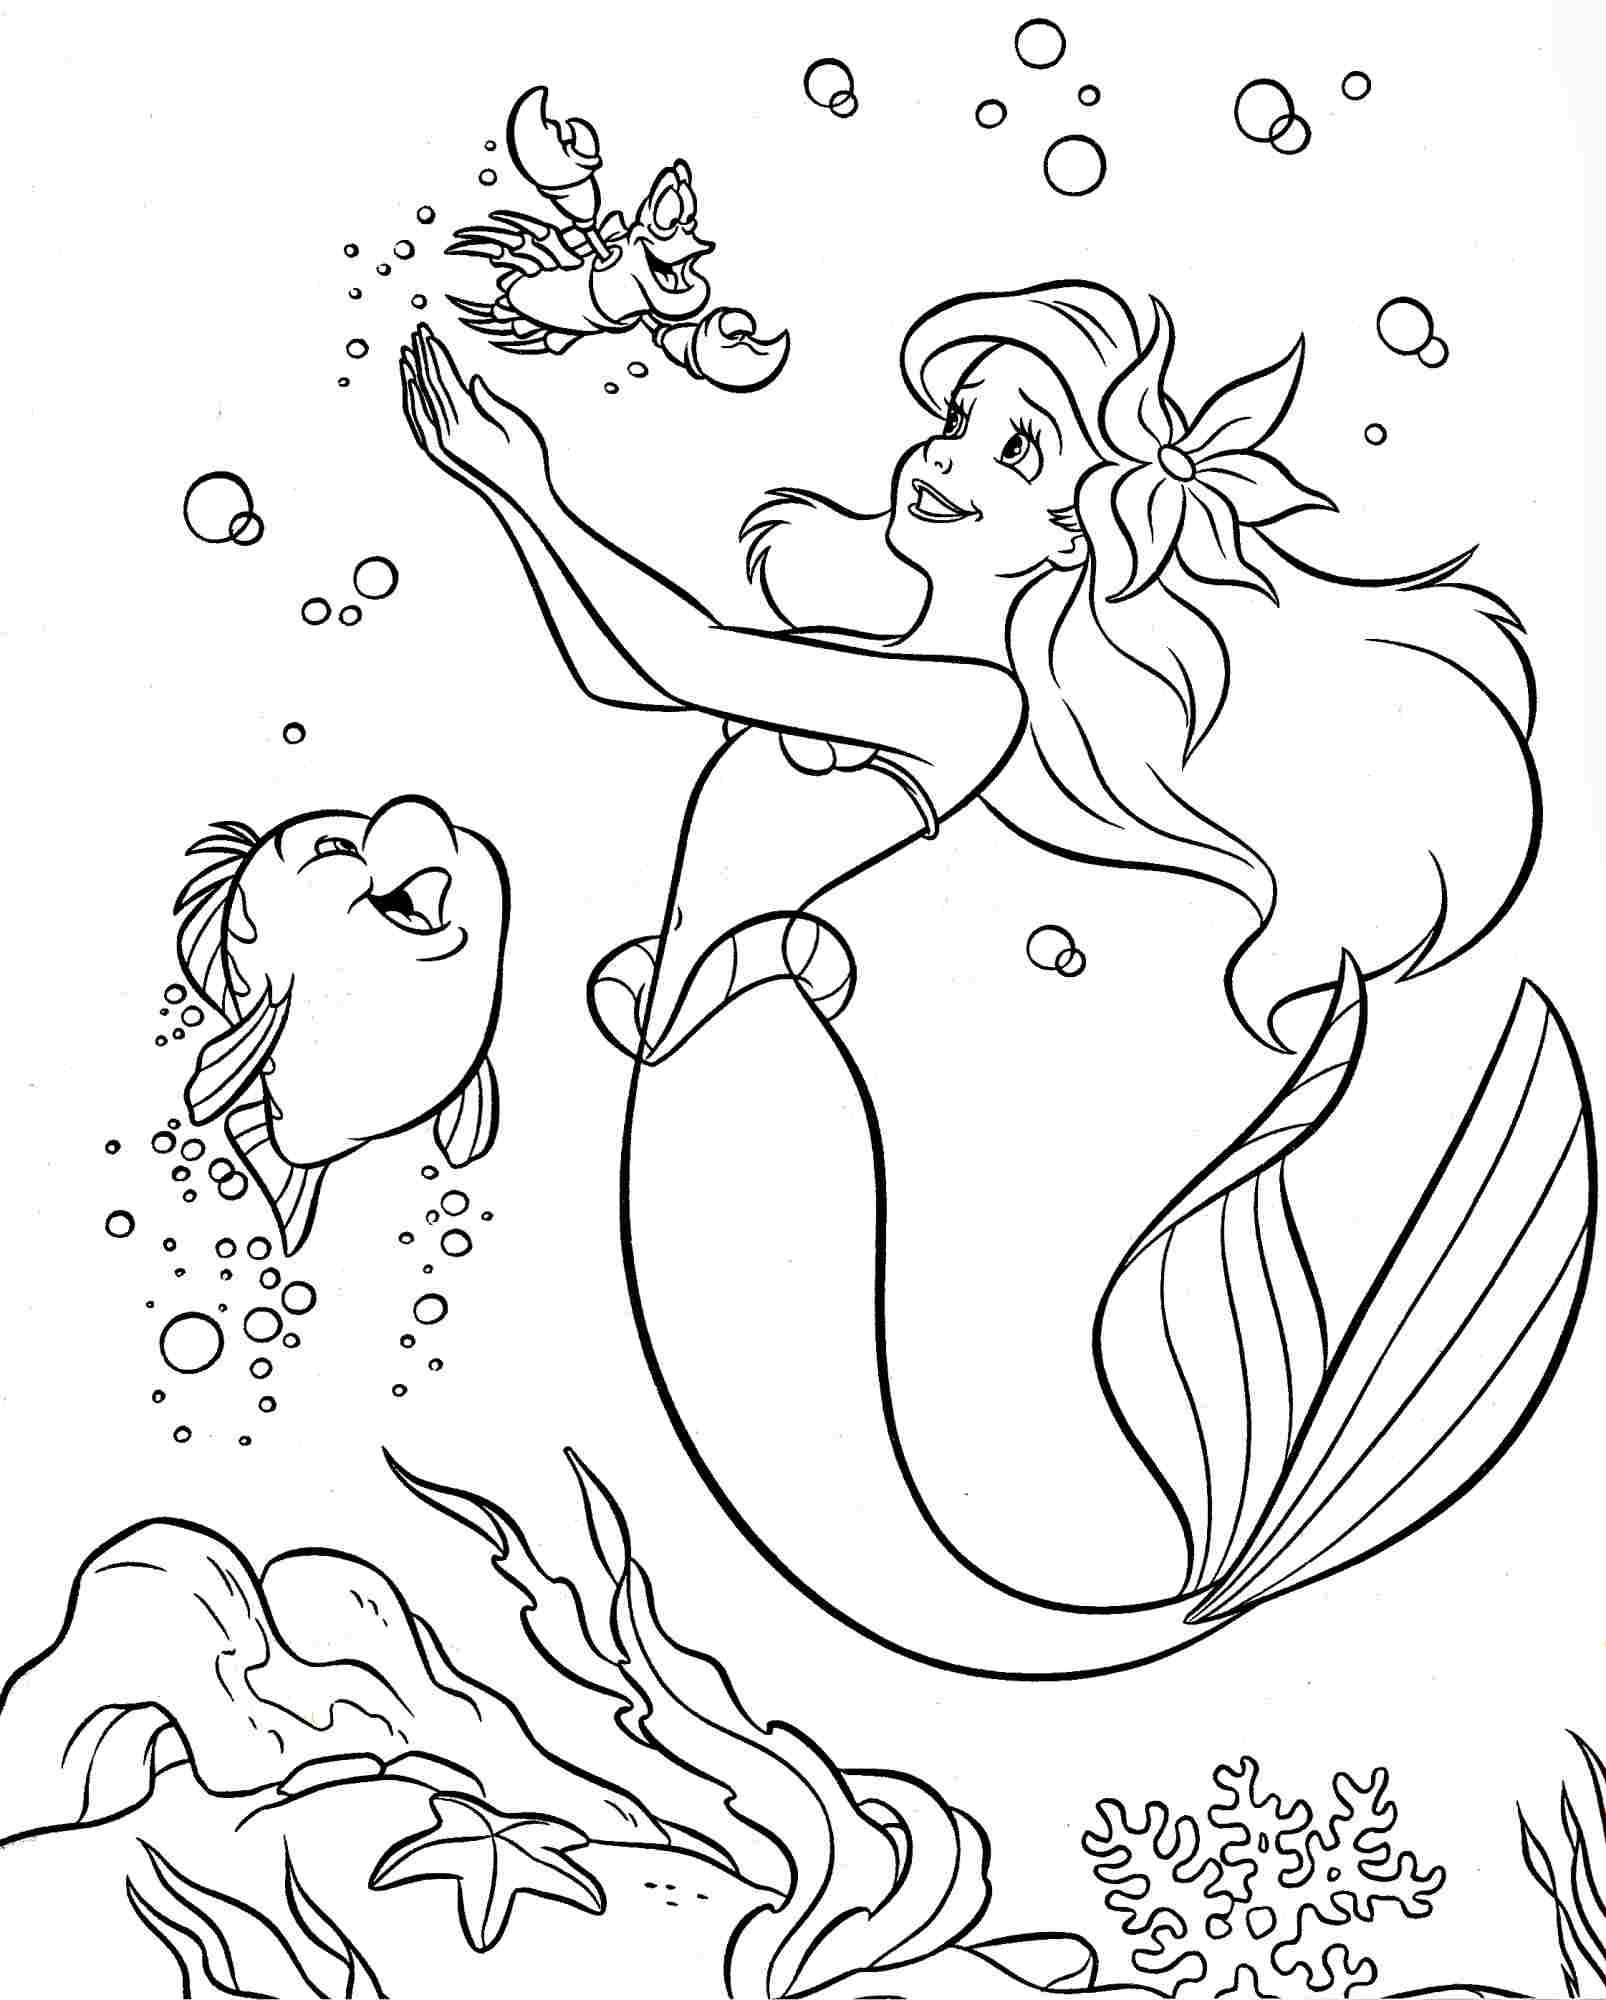 Colouring Pages Coloring Pages Disney Princess Little Princess Ariel Coloring Page Printable